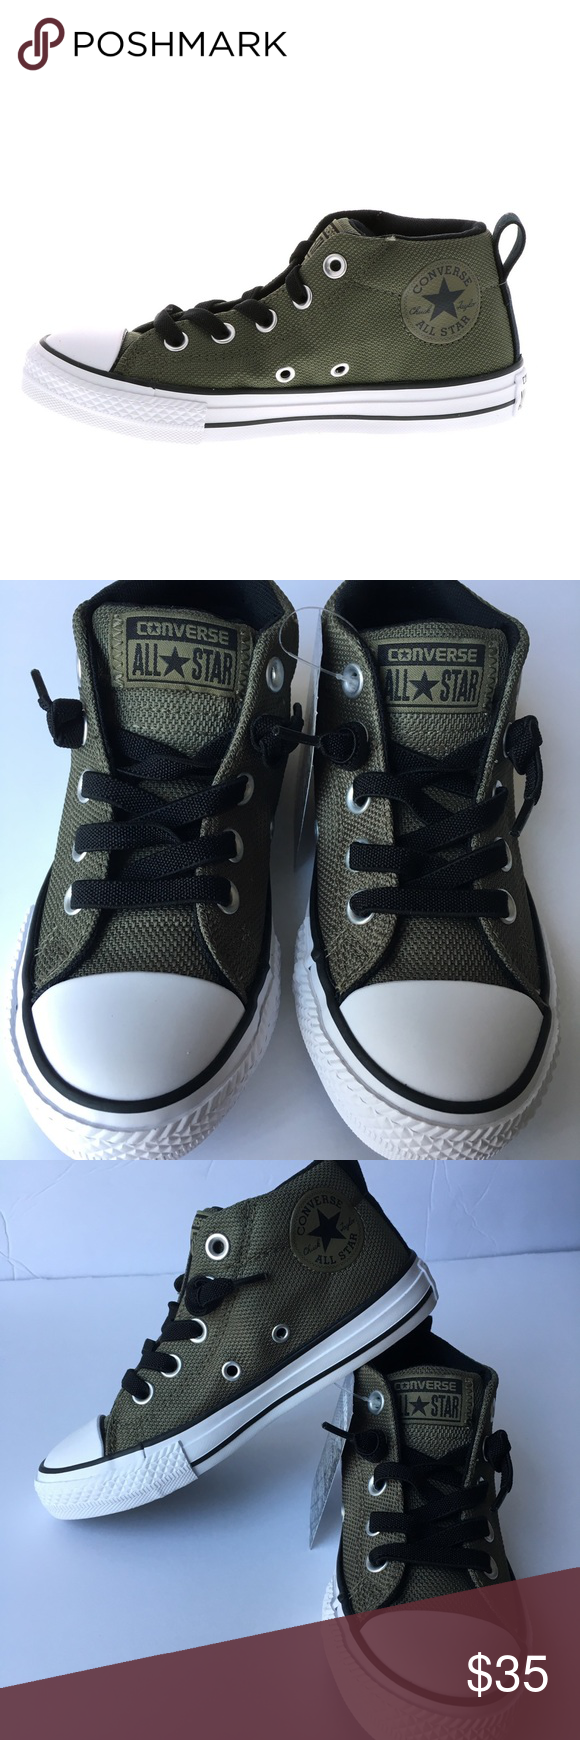 7a5e98059a40 Converse Chuck Taylor All Star street mid NWT Converse CTAS Street Mid  Medium Olive Black White Size 12 Junior Converse Shoes Sneakers